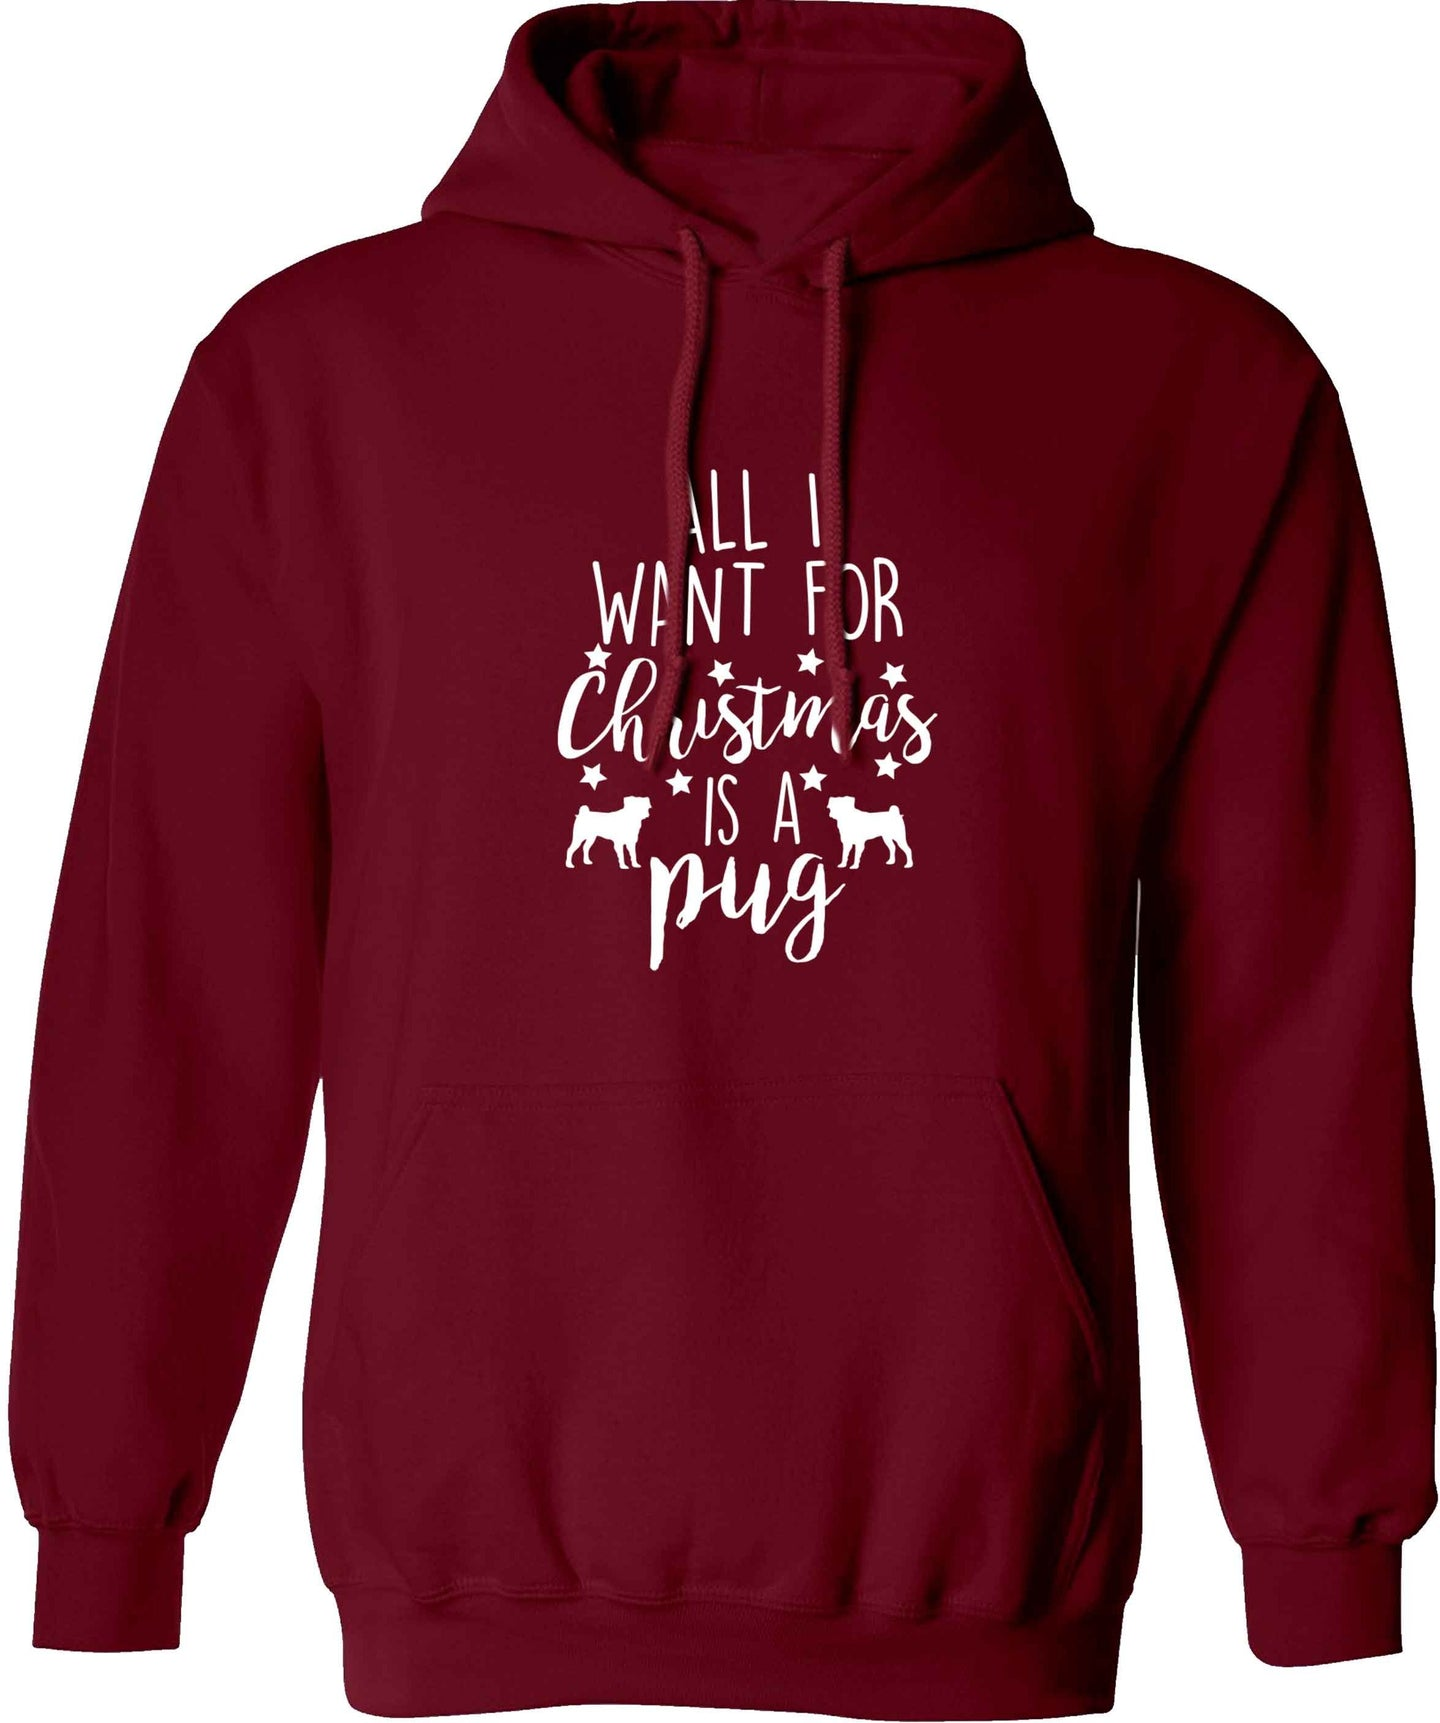 All I want for Christmas is a pug adults unisex maroon hoodie 2XL